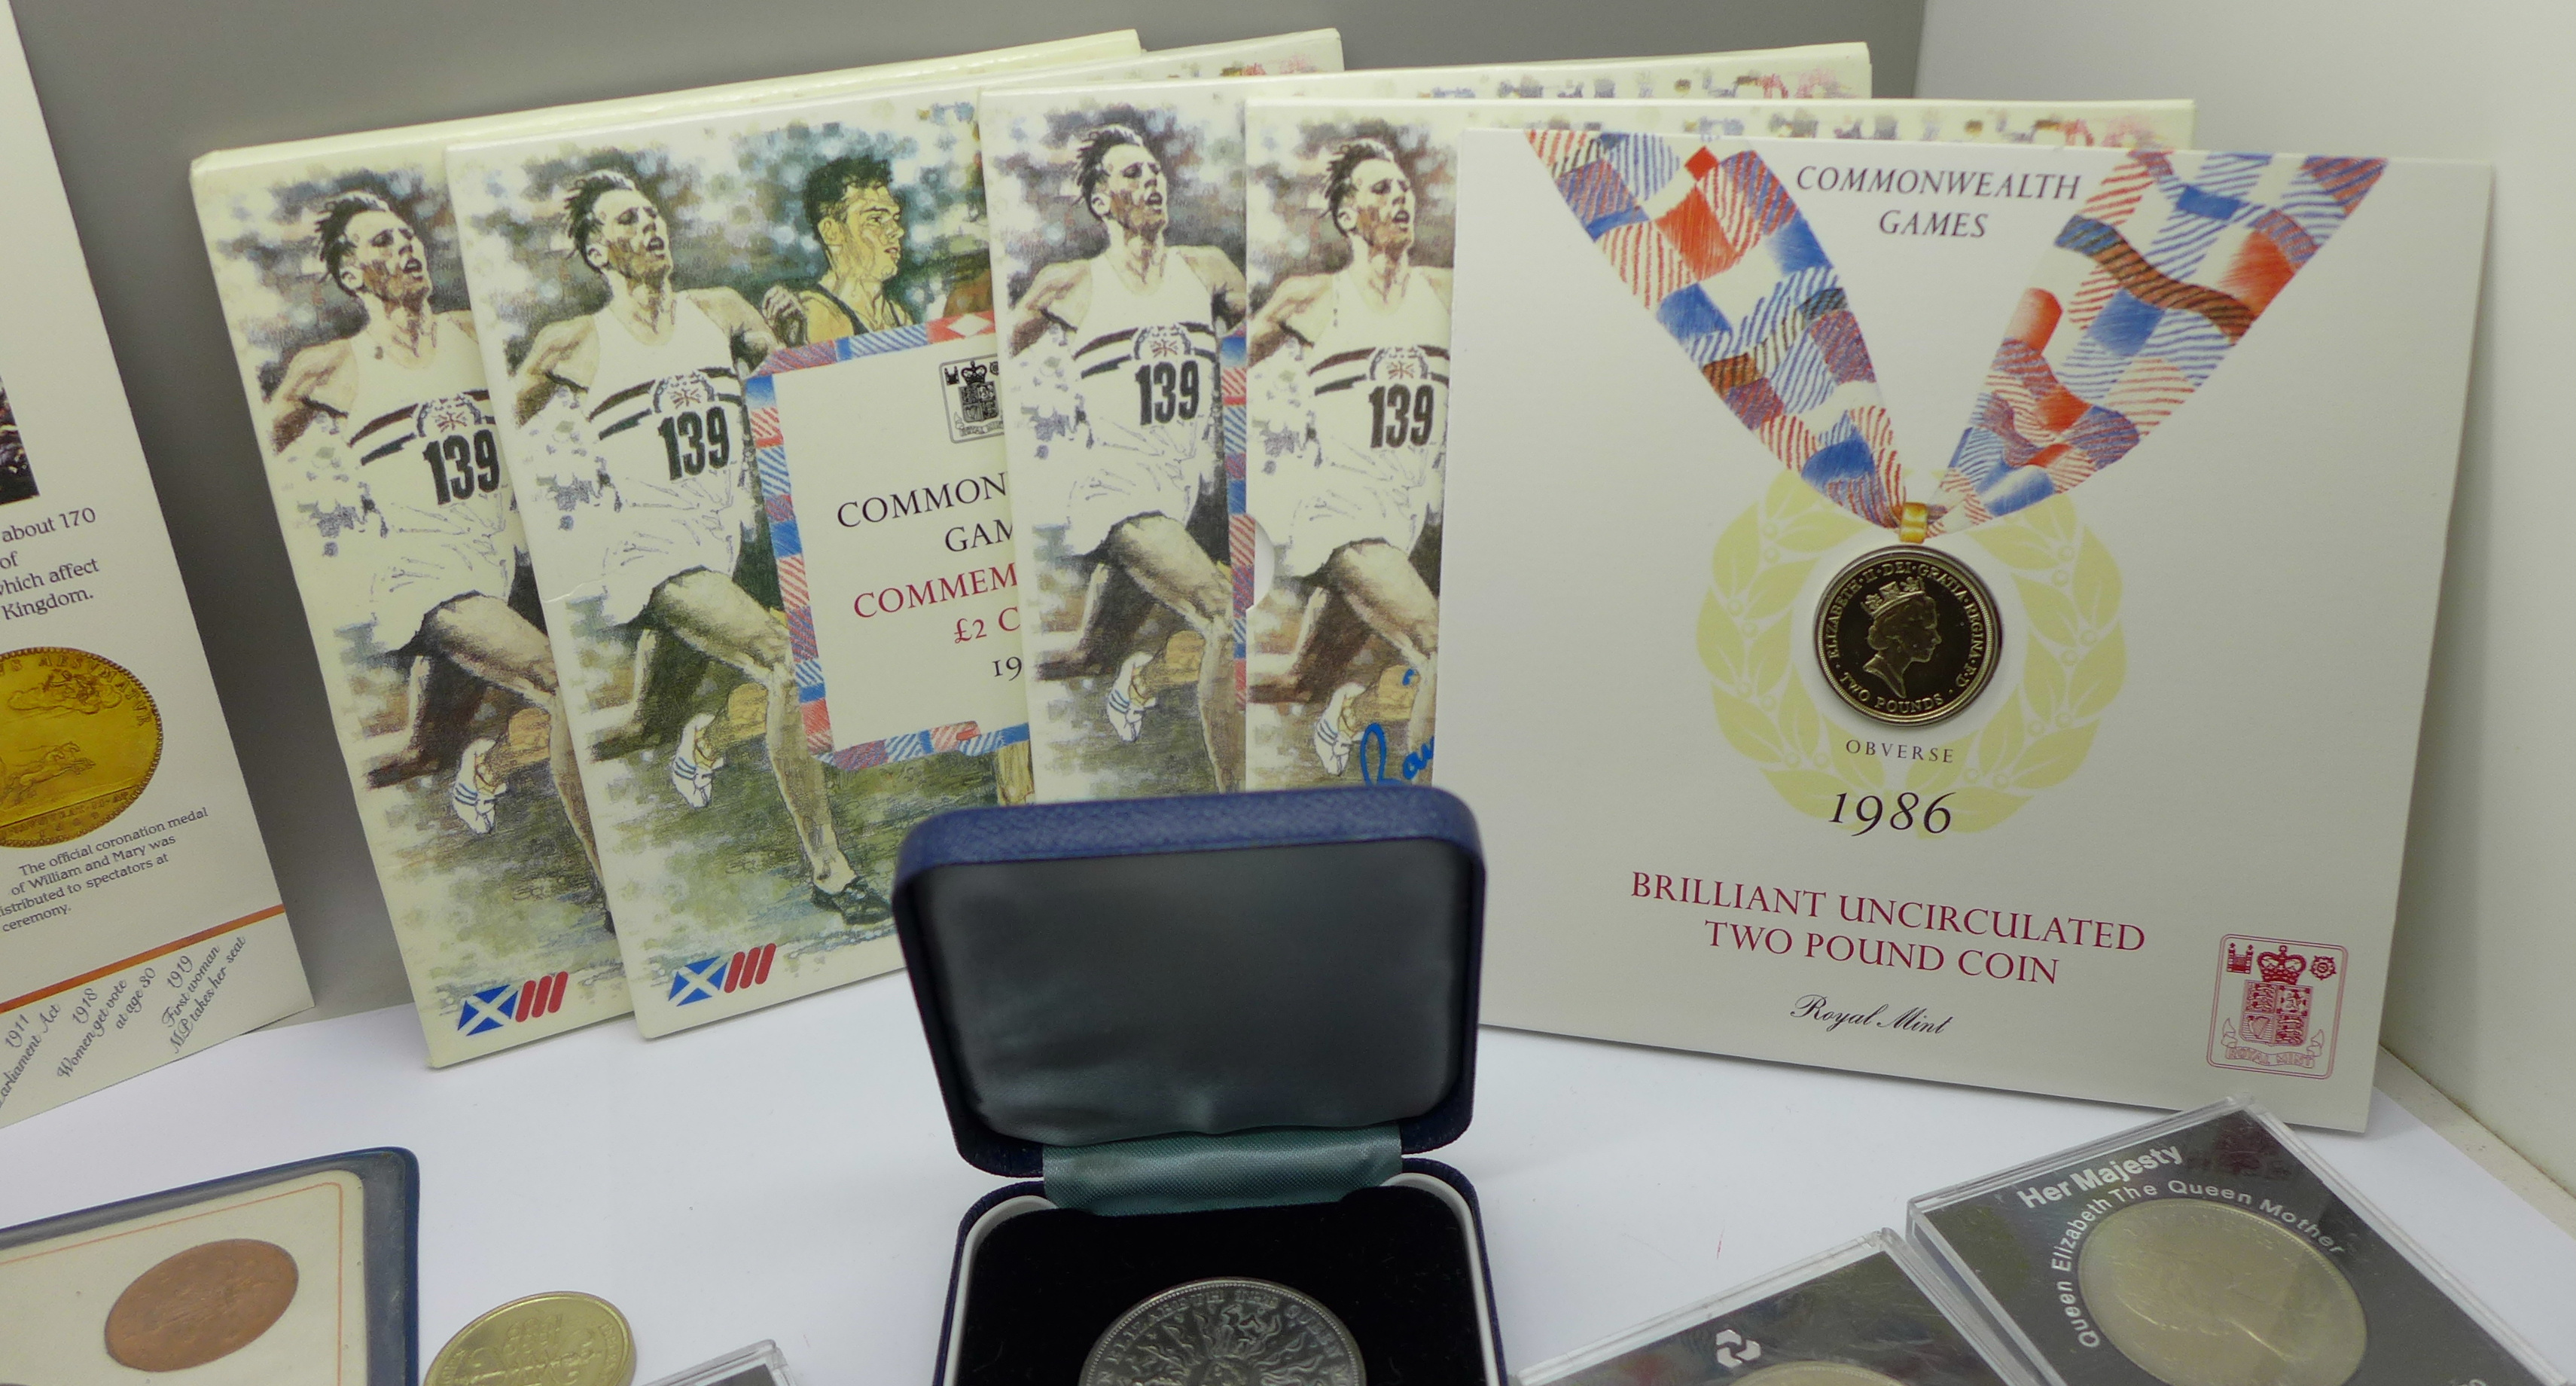 Four £2 commemorative coins from the 1986 Commonwealth Games, a collection of other commemorative - Image 2 of 5